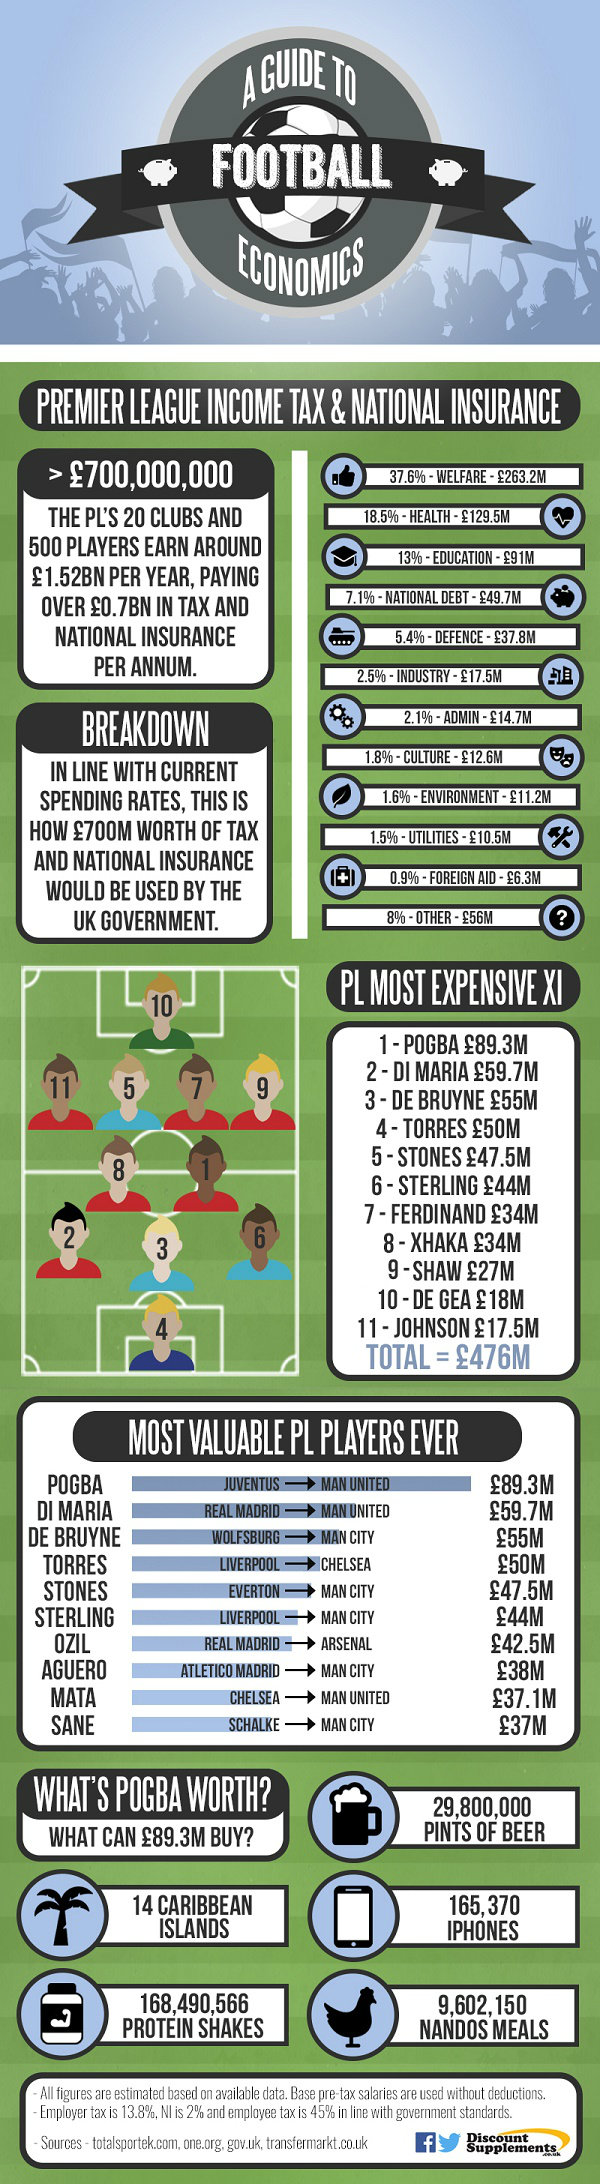 Football Economics Infographic